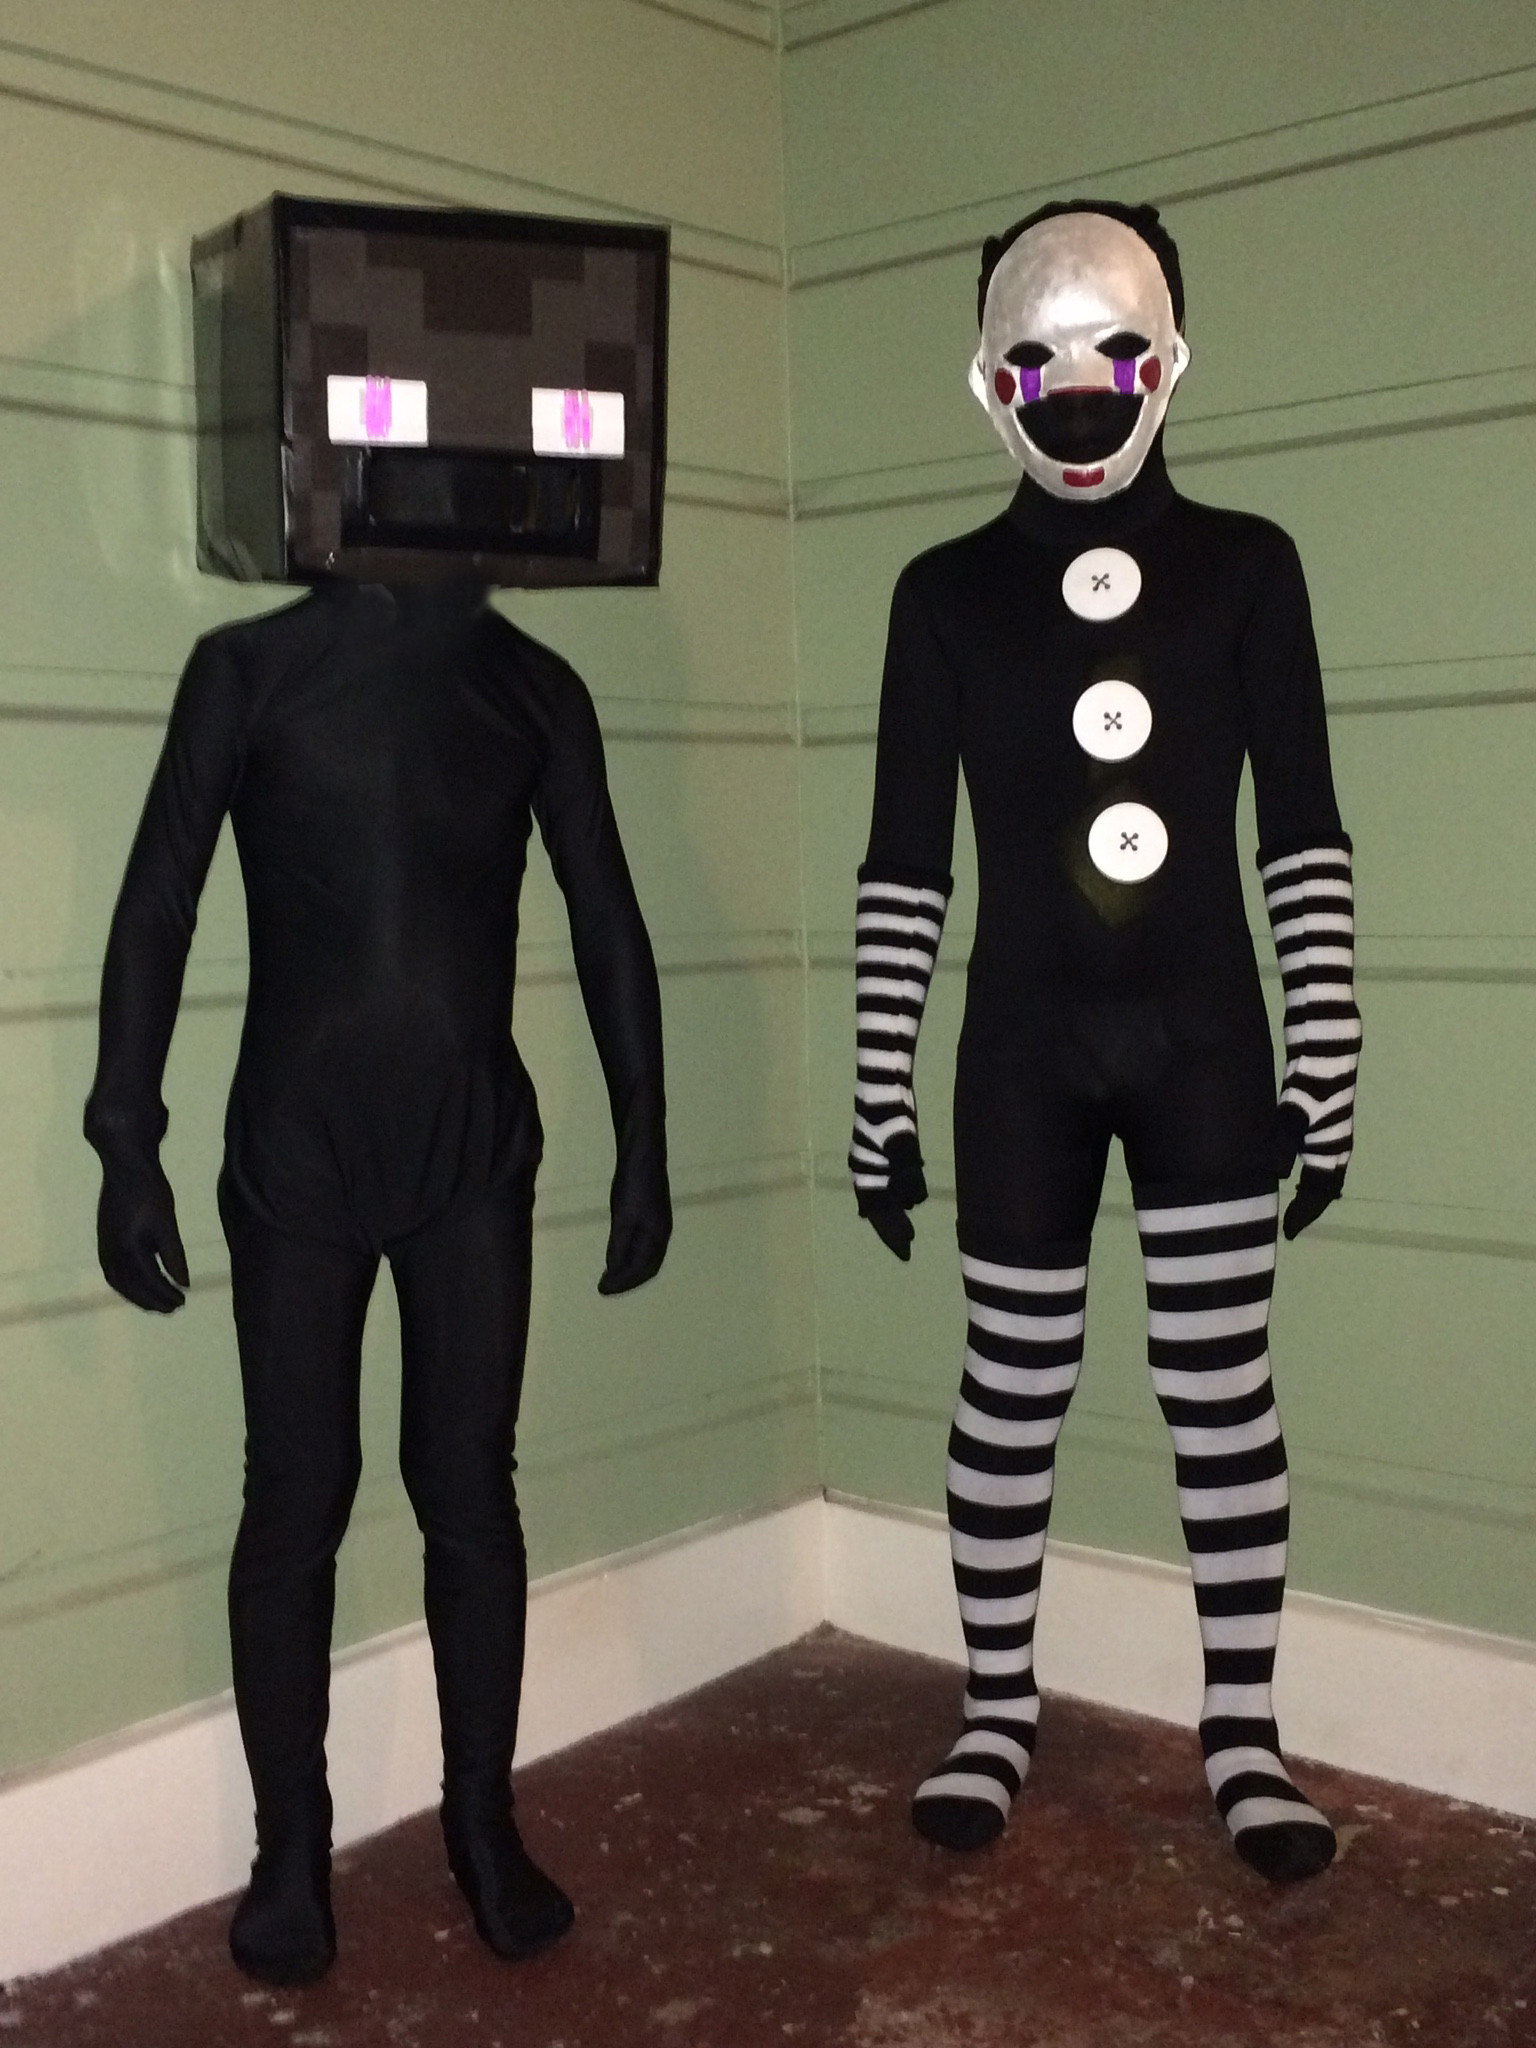 Mutant Enderman Costume From Minecraft